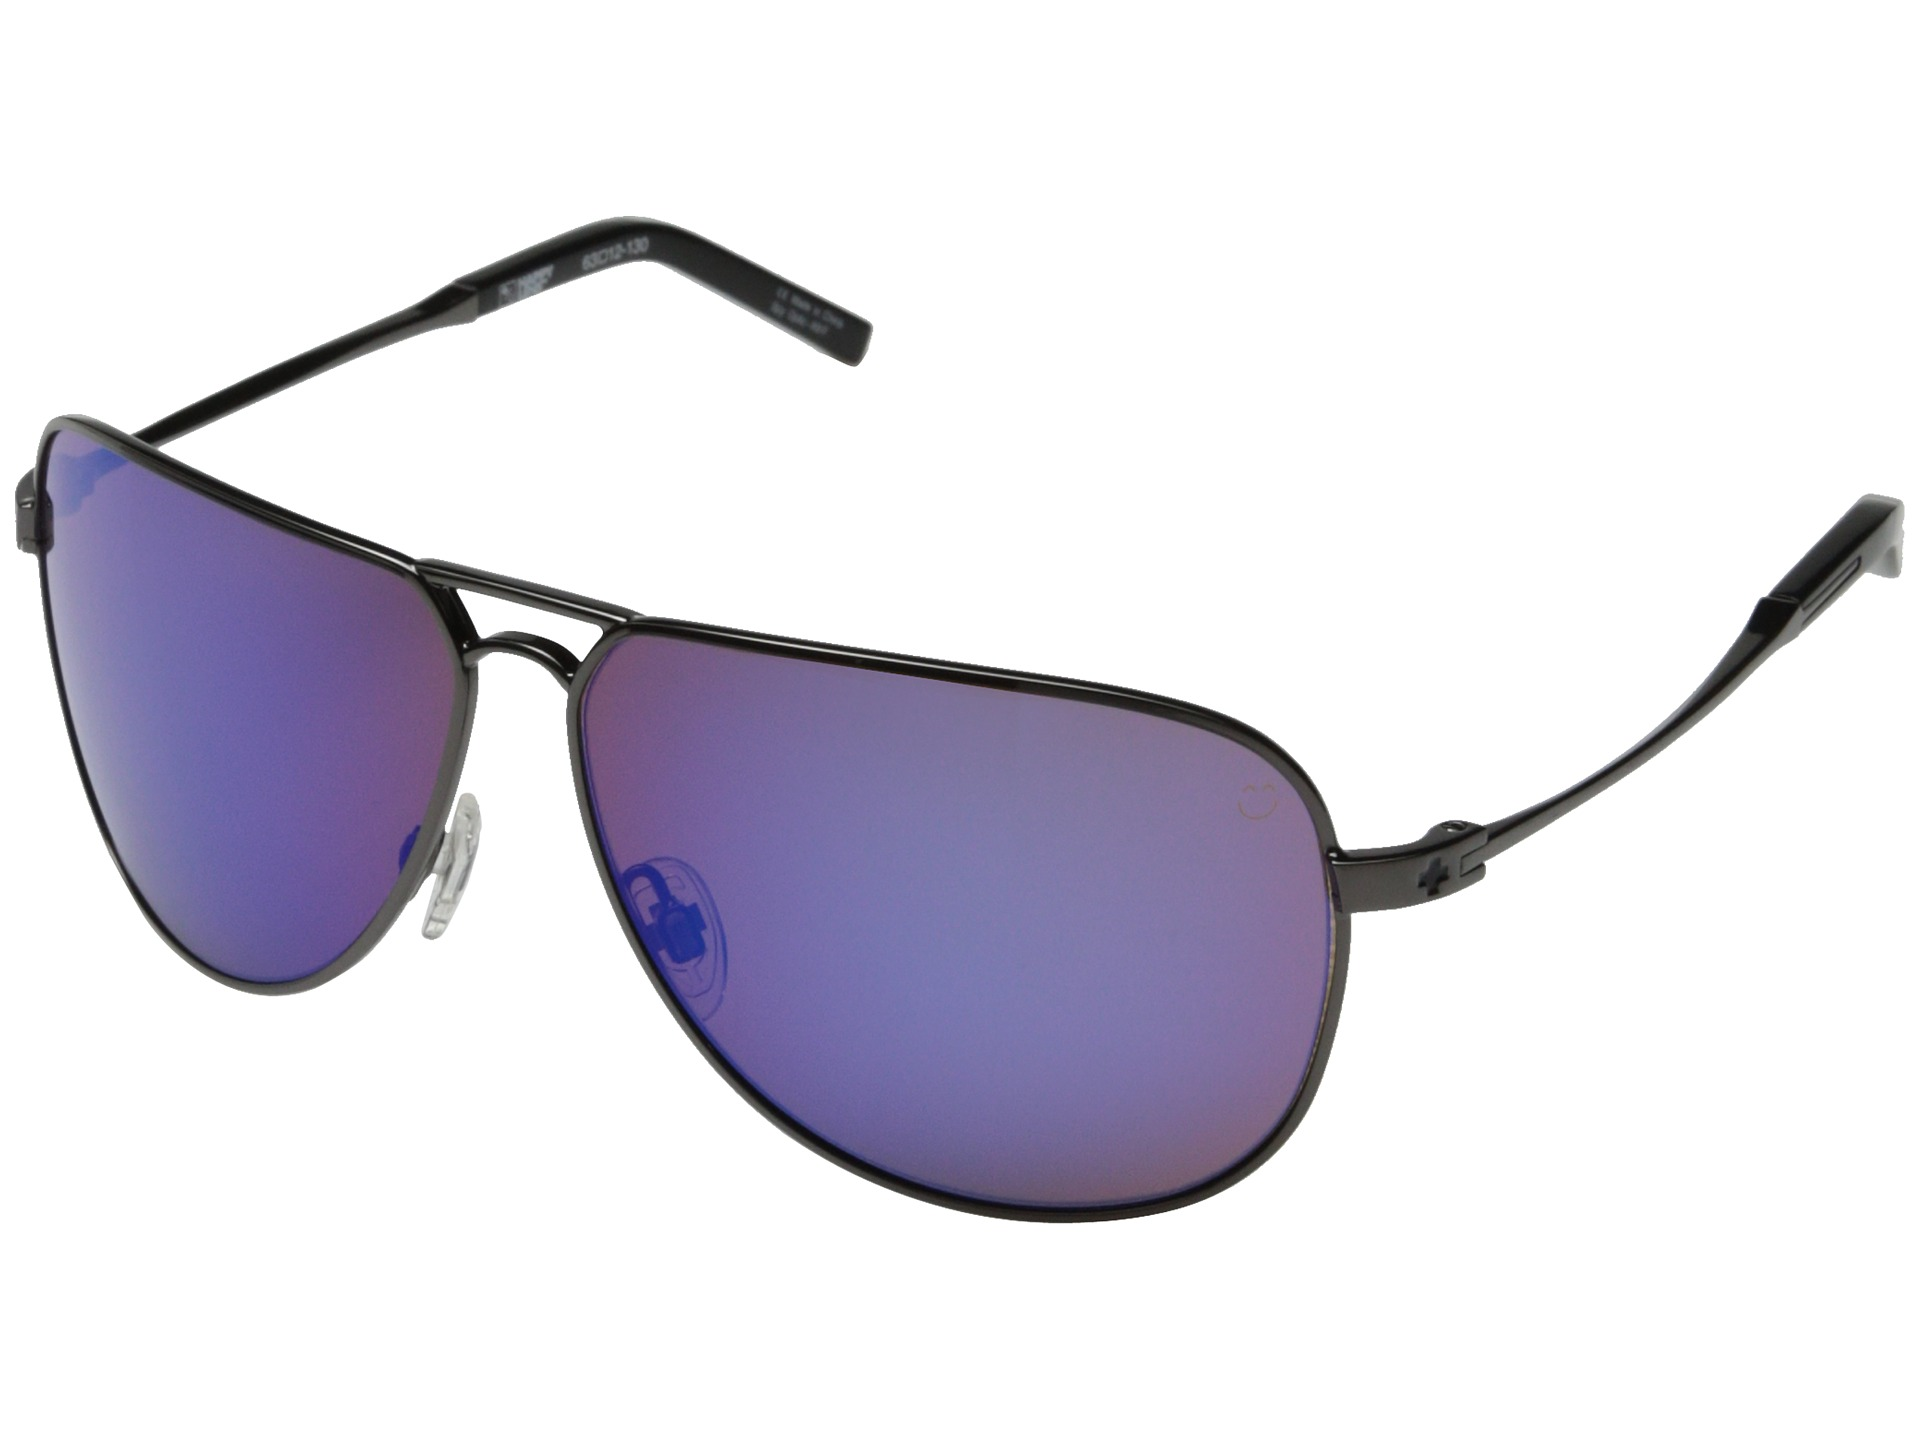 c2f74081af Where To Buy Spy Sunglasses